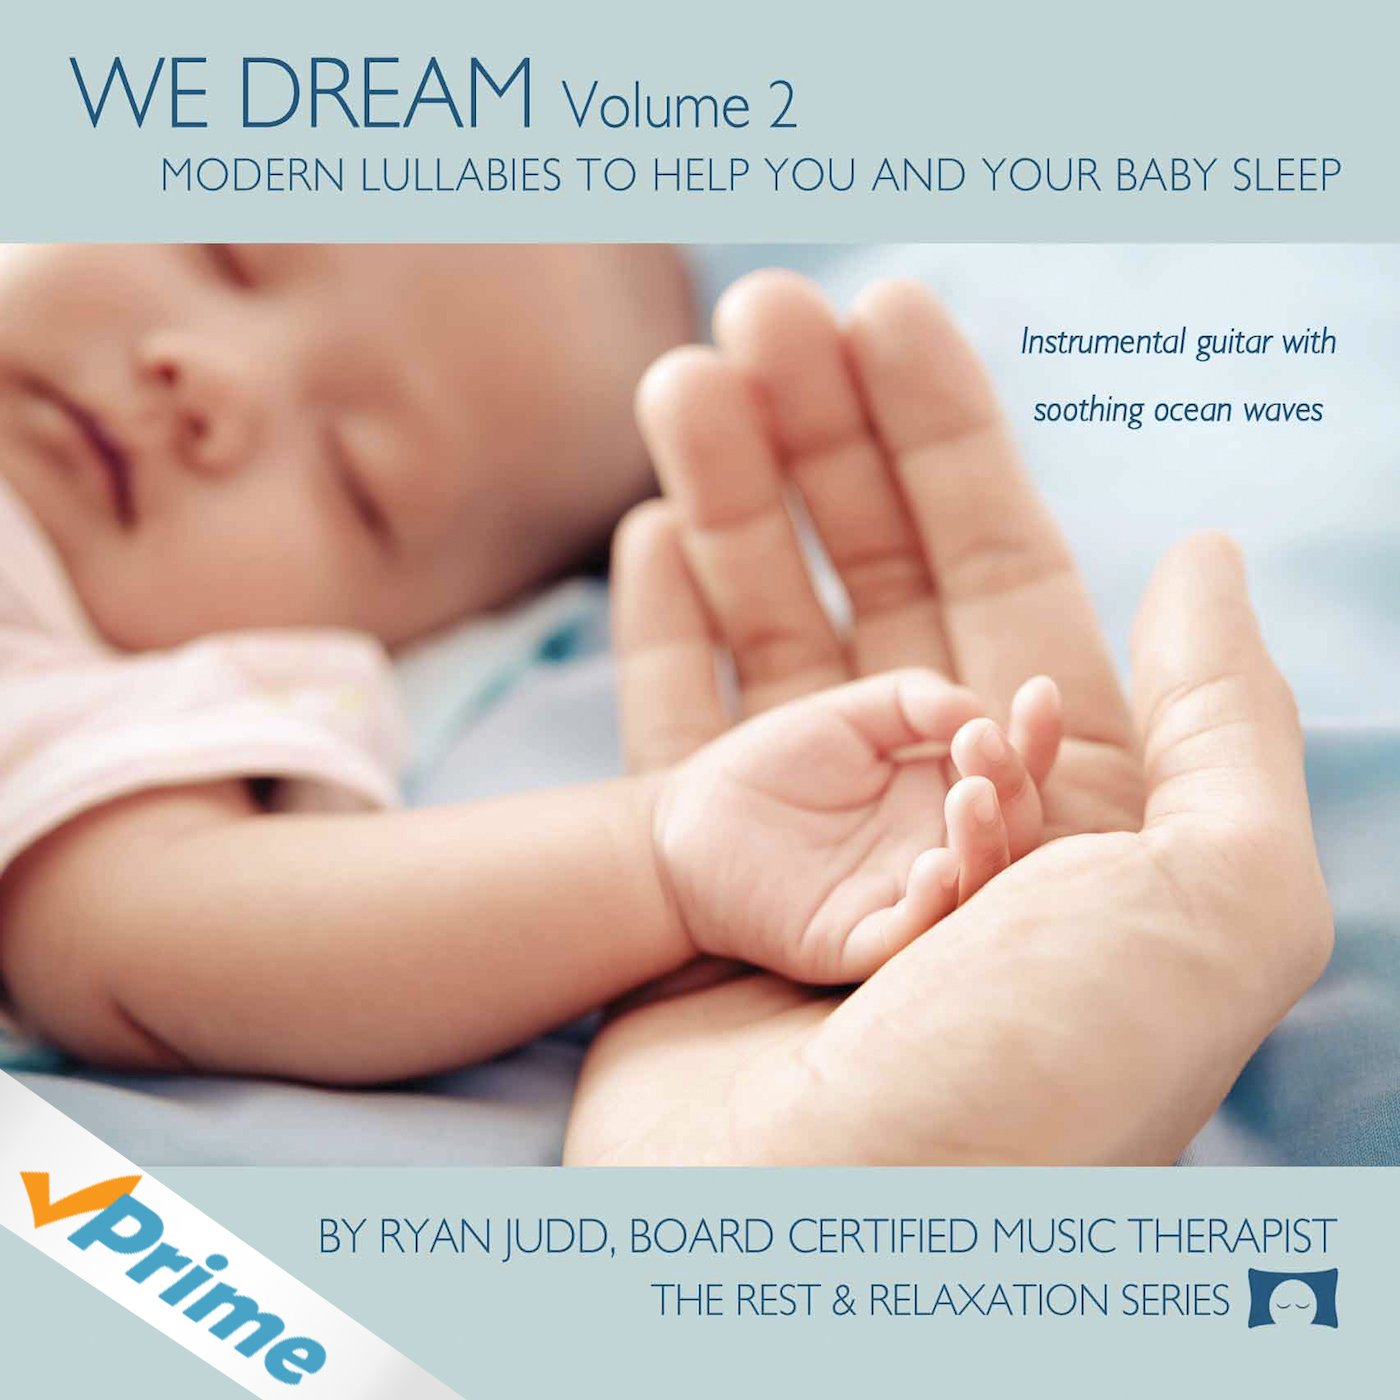 Lullaby Sleep CD, We Dream: Volume 2 - Helps You and Your Baby Fall Asleep - Soothing Guitar Music with White Noise -